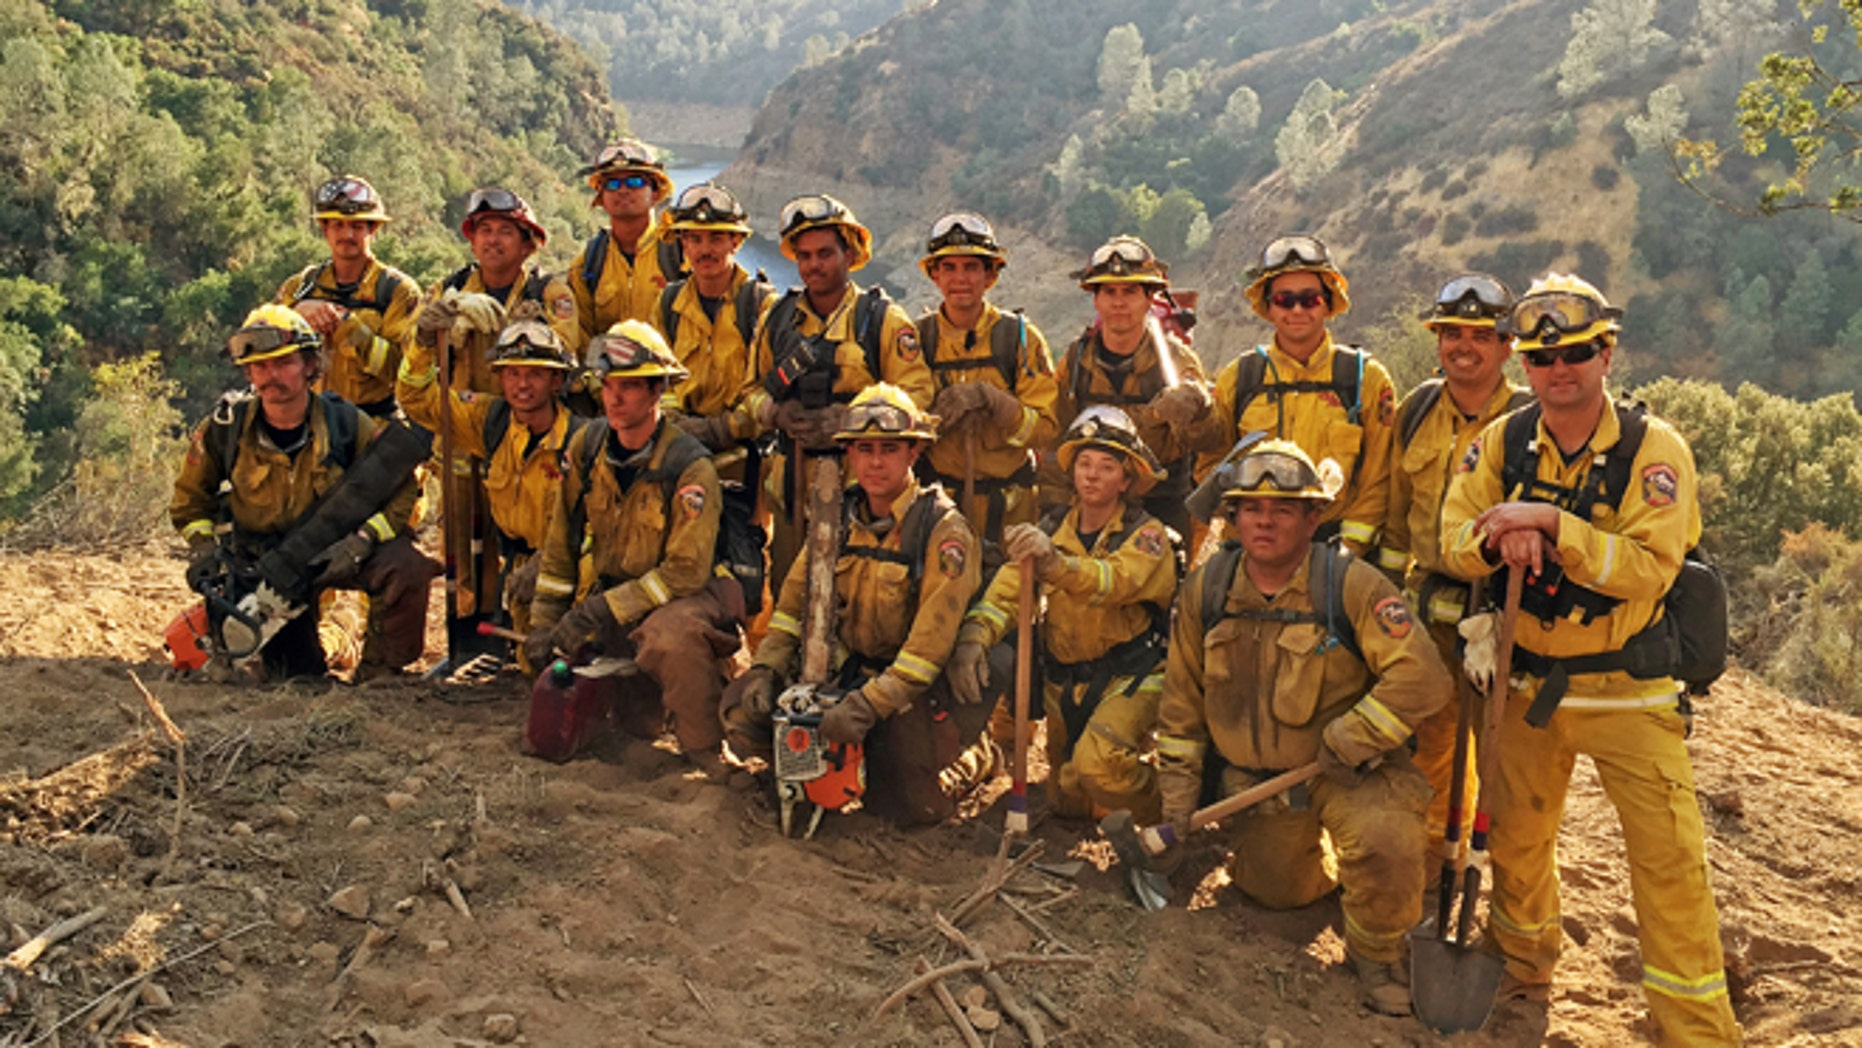 In this Aug. 15, 2016 photo provided by the California Conservation Corps, a civilian firefighter crew poses for a group photo during their deployment on the Chimney Fire in San Luis Obispo County, Calif.